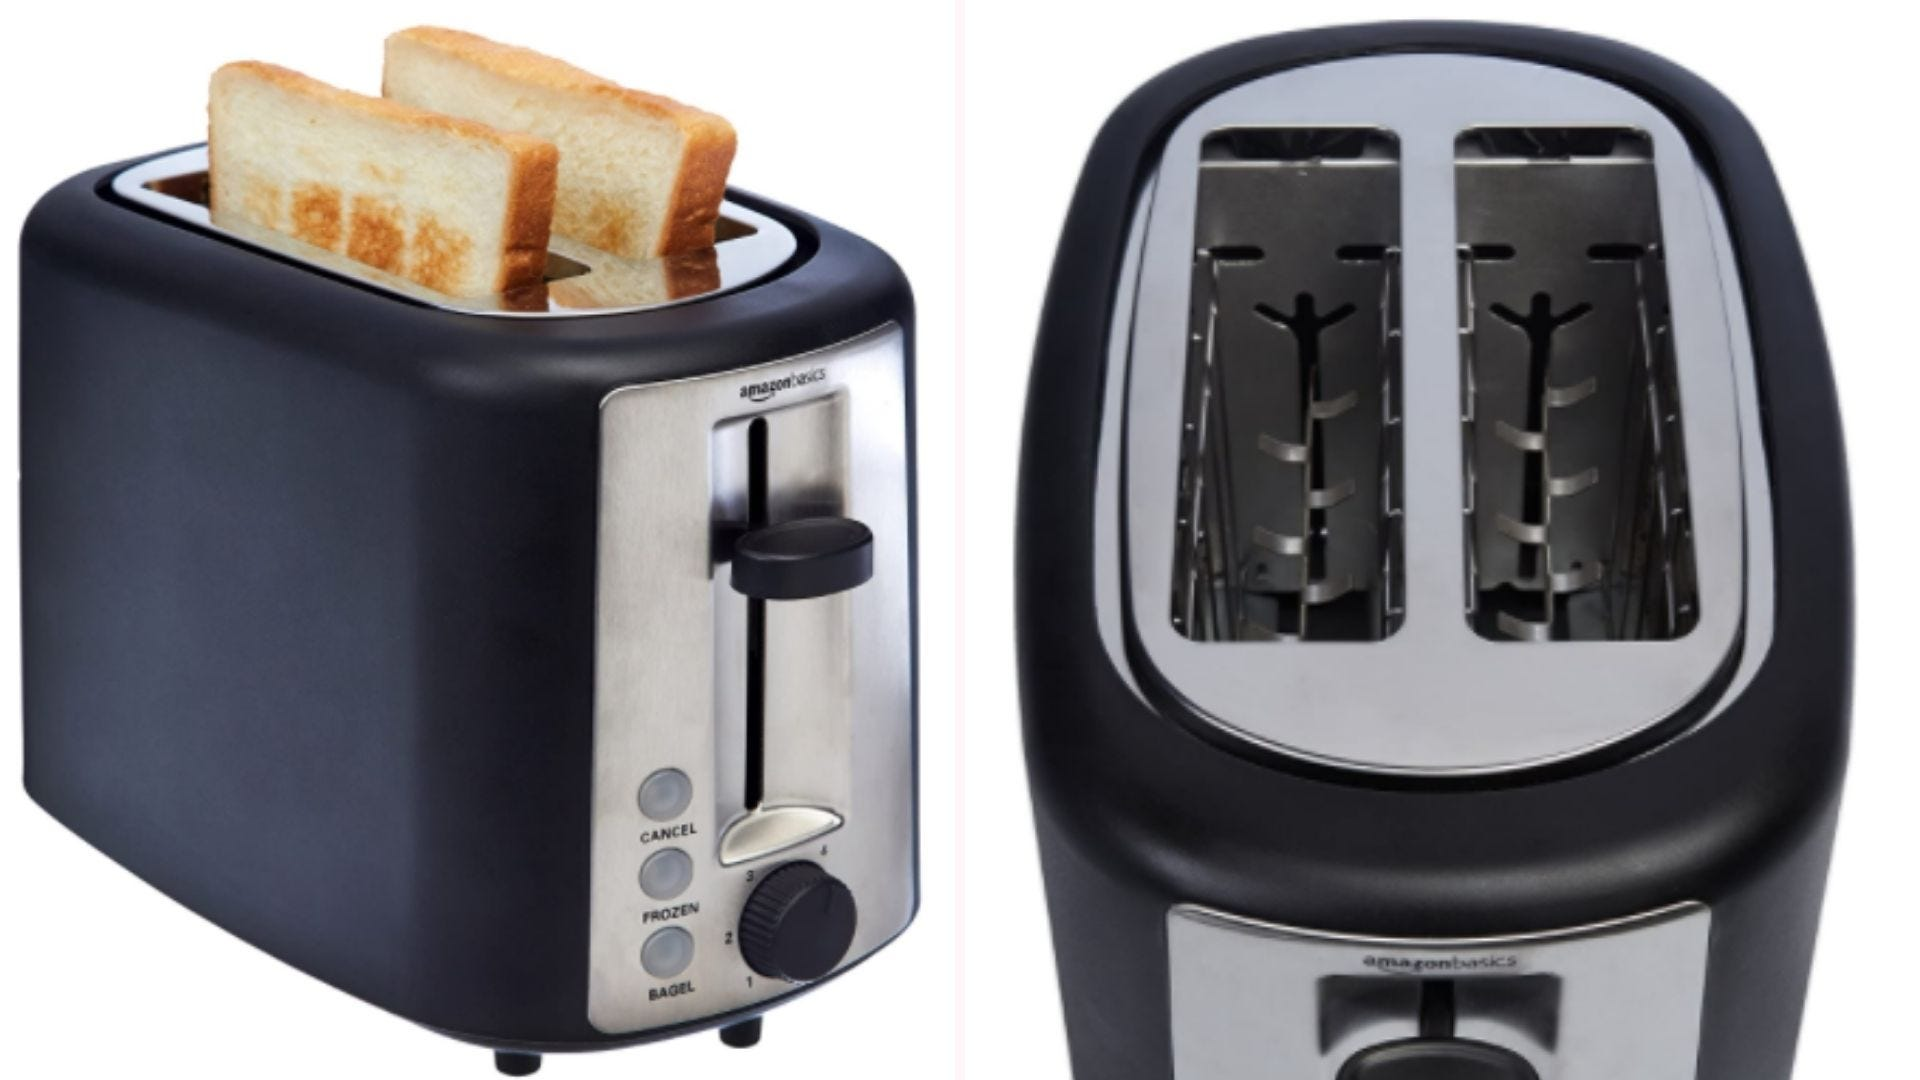 On the left, a toaster with black sides and a silver face ejects two lightly-browned pieces of bread. On the right, a close up view of the device's two extra-wide toasting slots that measure 5.25-by-1.25 inches long.